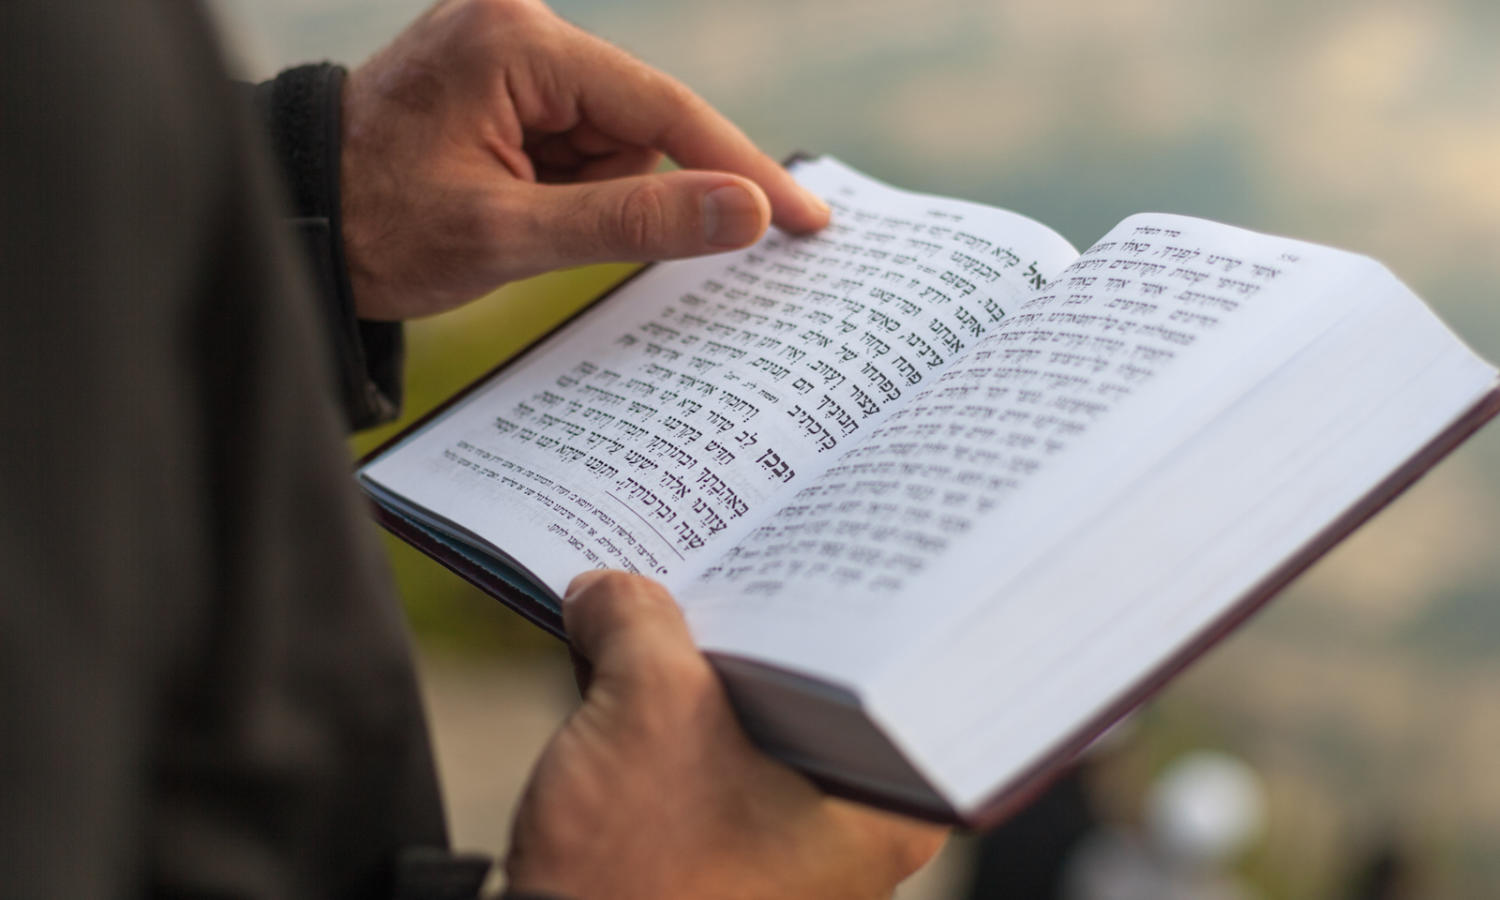 How to Find a Mahzor (High Holiday Prayer Book) | My Jewish